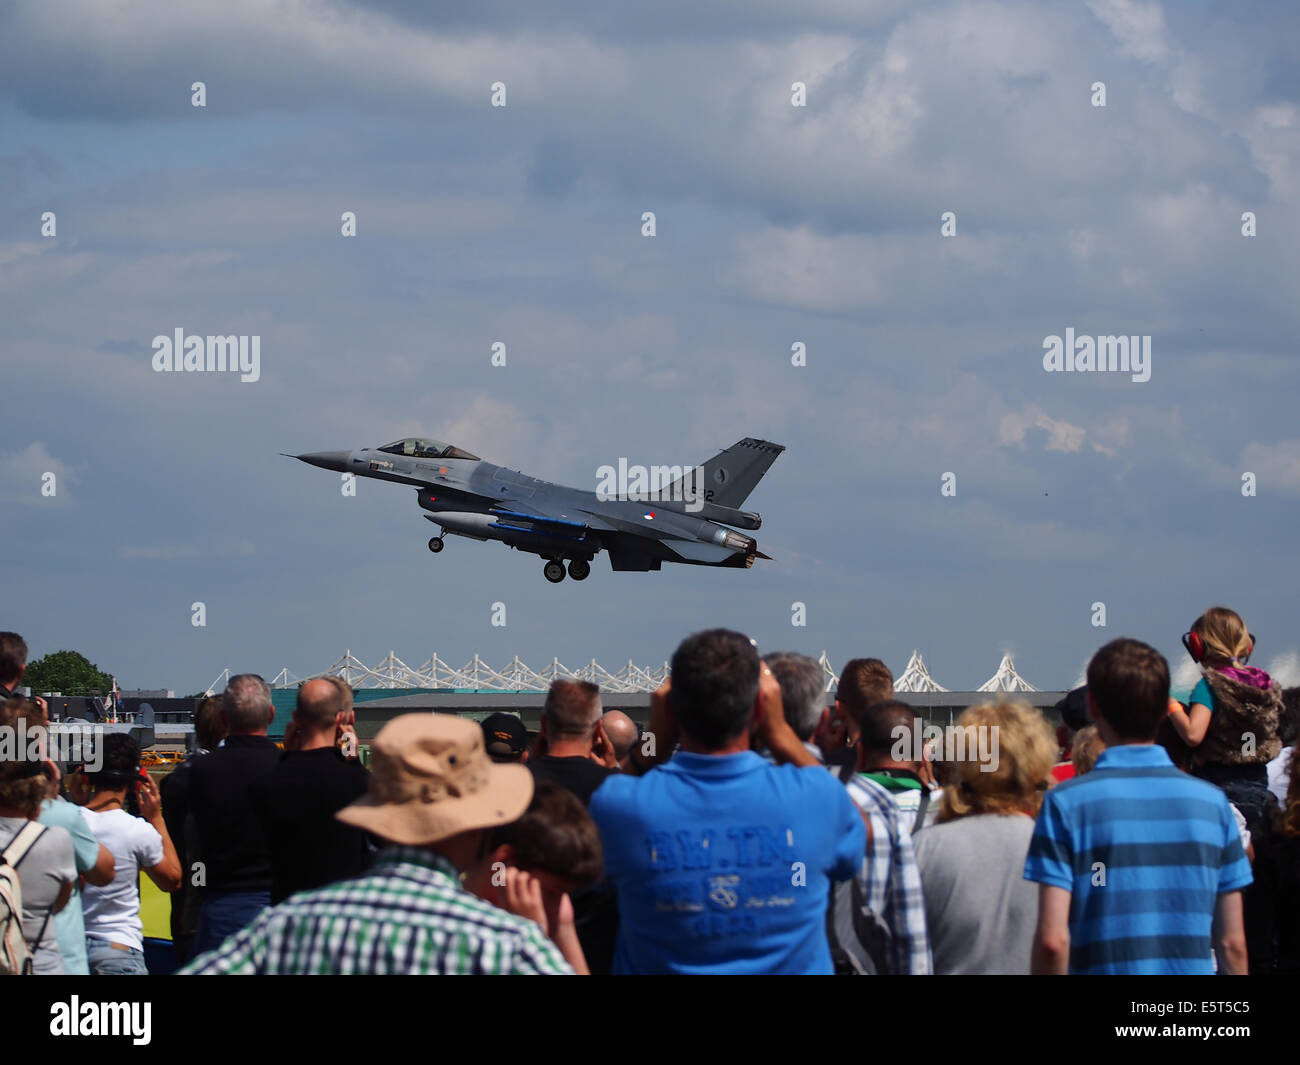 J-632 F-16AM Fighting Falcon of the Royal Netherlands Air Force, pic1 Stock Photo